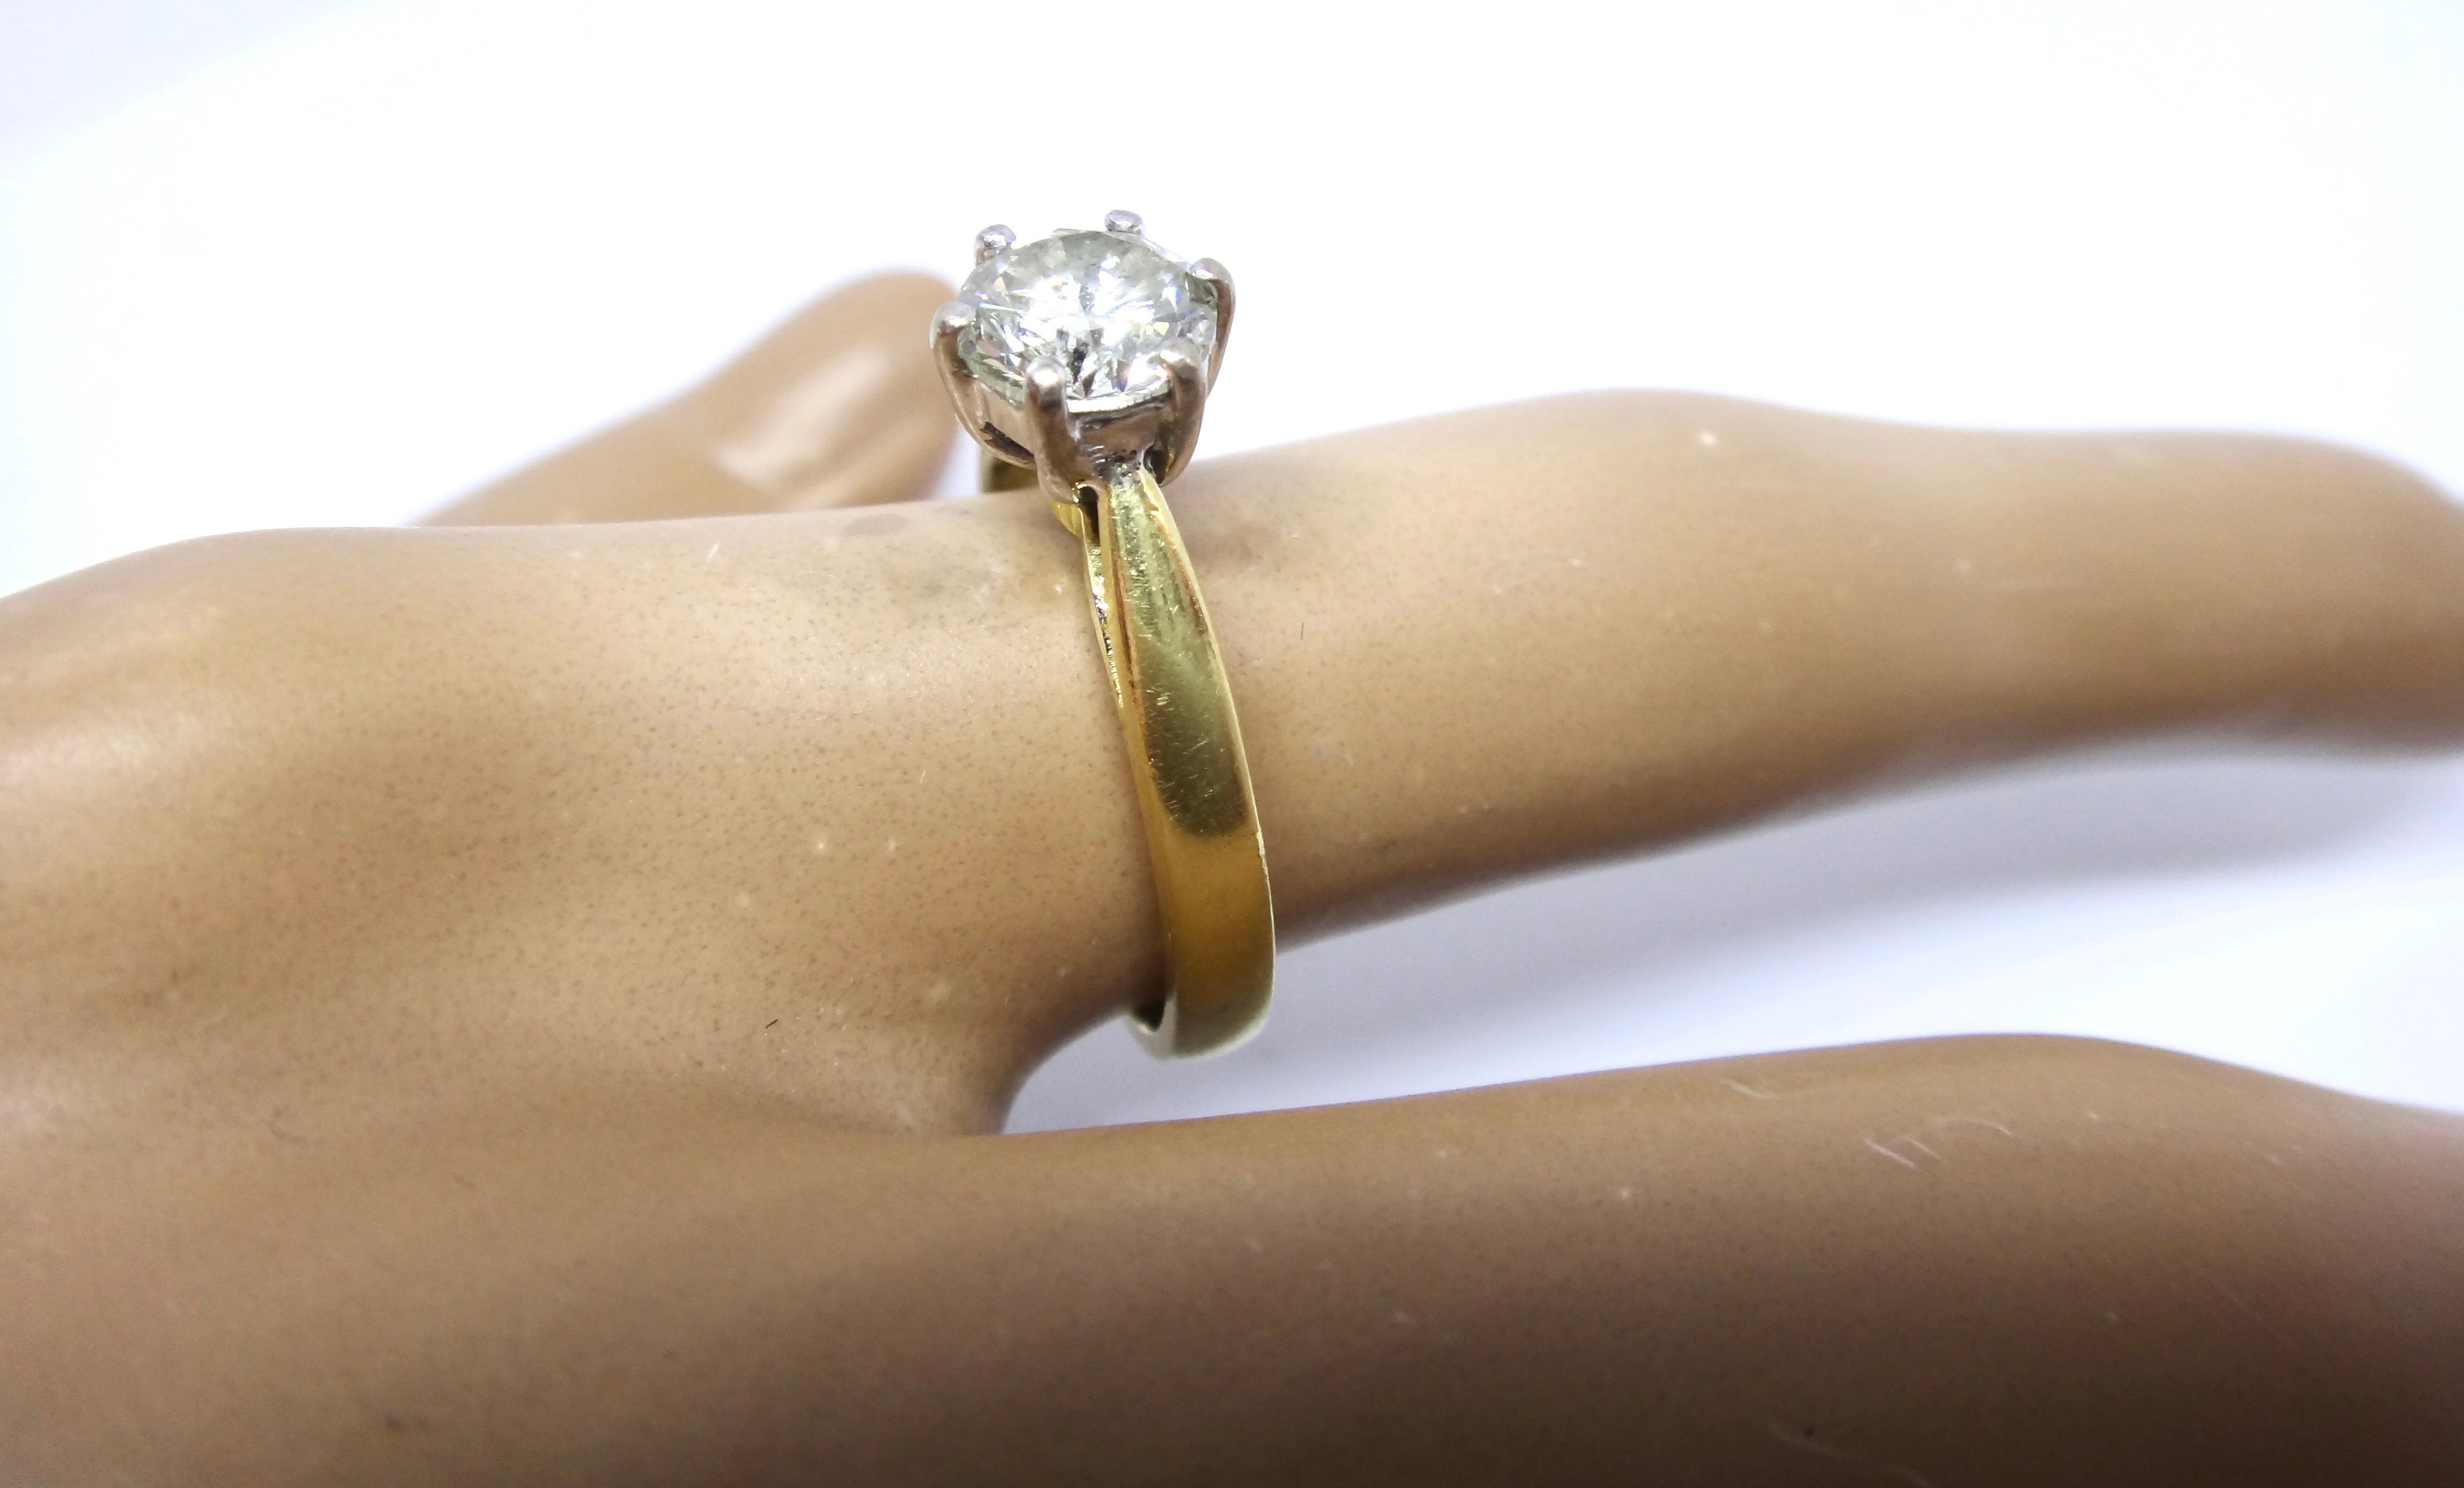 18CT Yellow GOLD, 1 Carat Brilliant Cut DIAMOND Solitaire Ring VAL $10,450